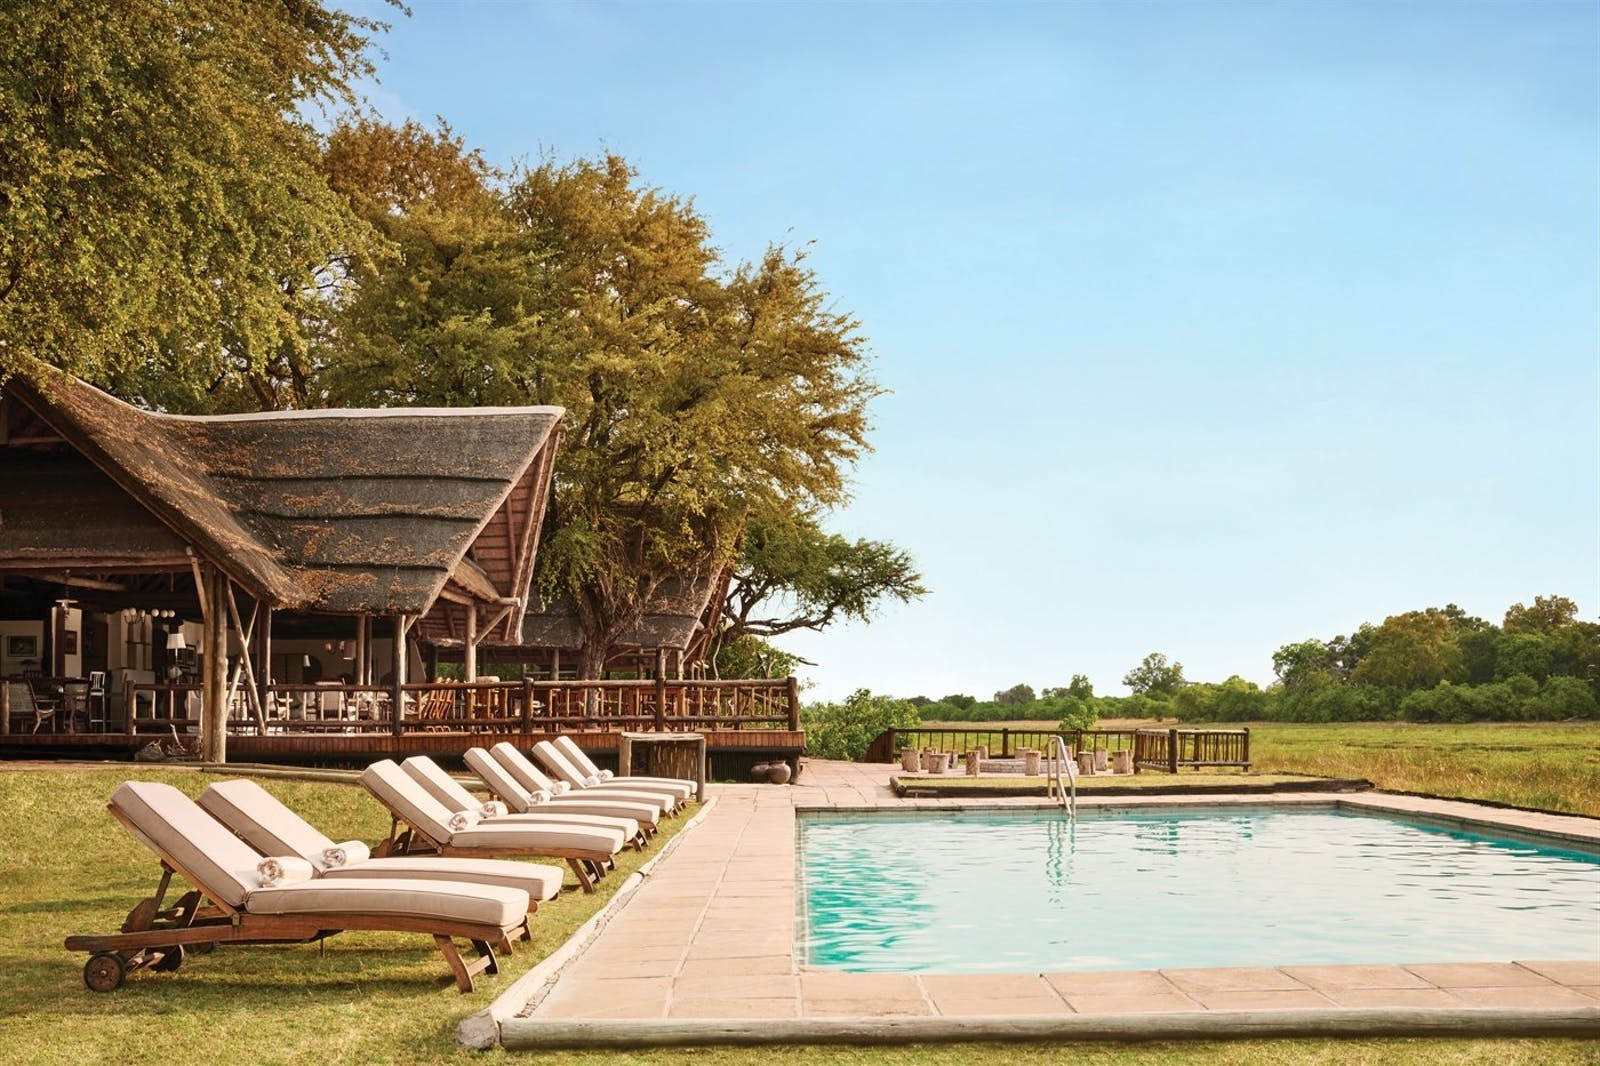 Swimming Pool at Khwai River Lodge, A Belmond Safari, Botswana